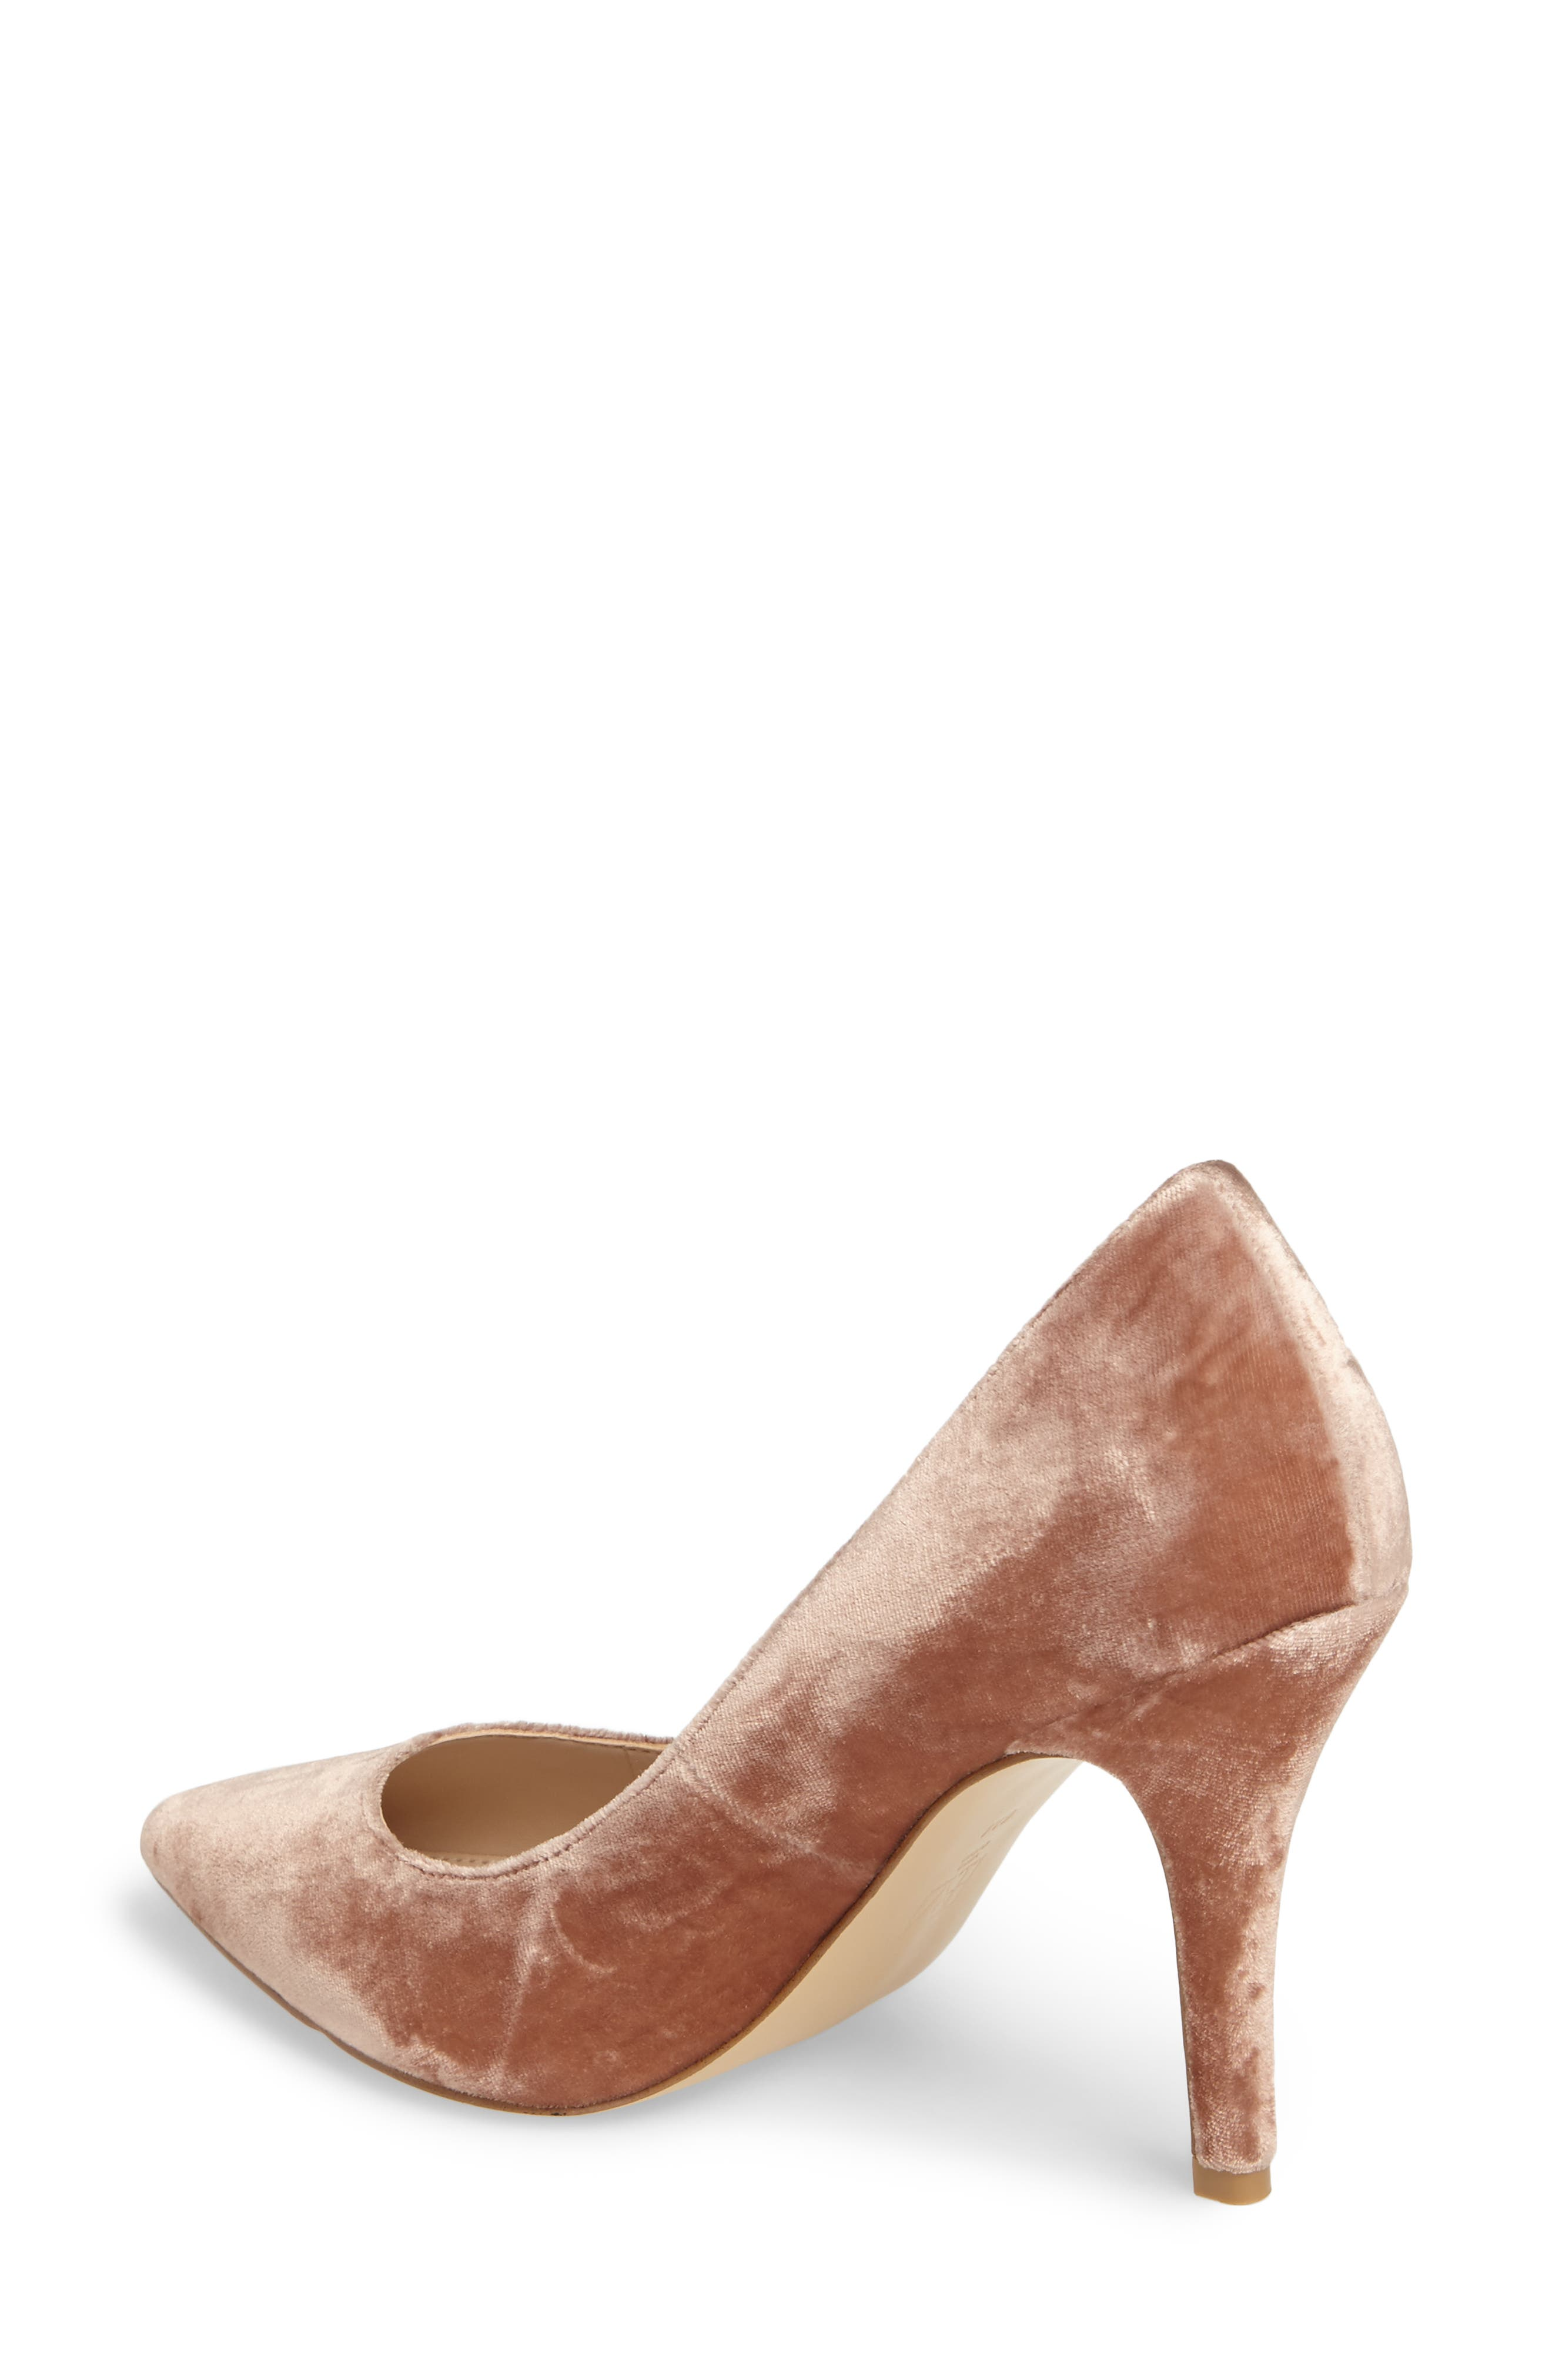 Vally2 Pointy Toe Pump,                             Alternate thumbnail 2, color,                             Blush Fabric